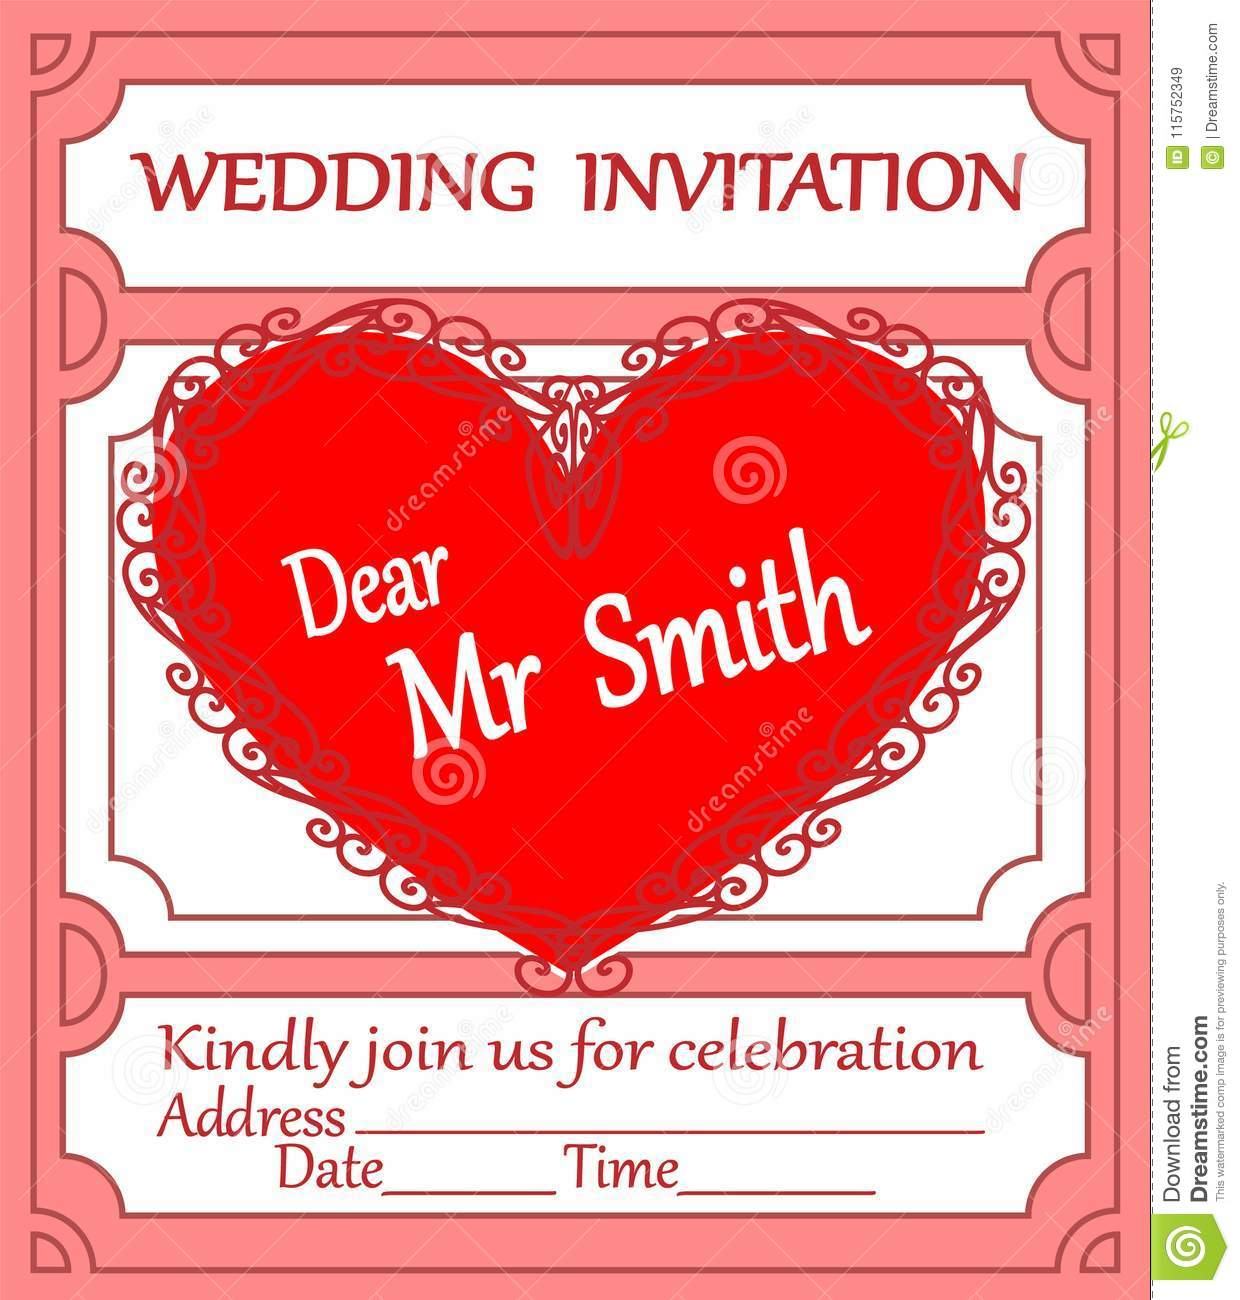 Wedding Card-invitation With Lace Heart Stock Vector - Illustration ...